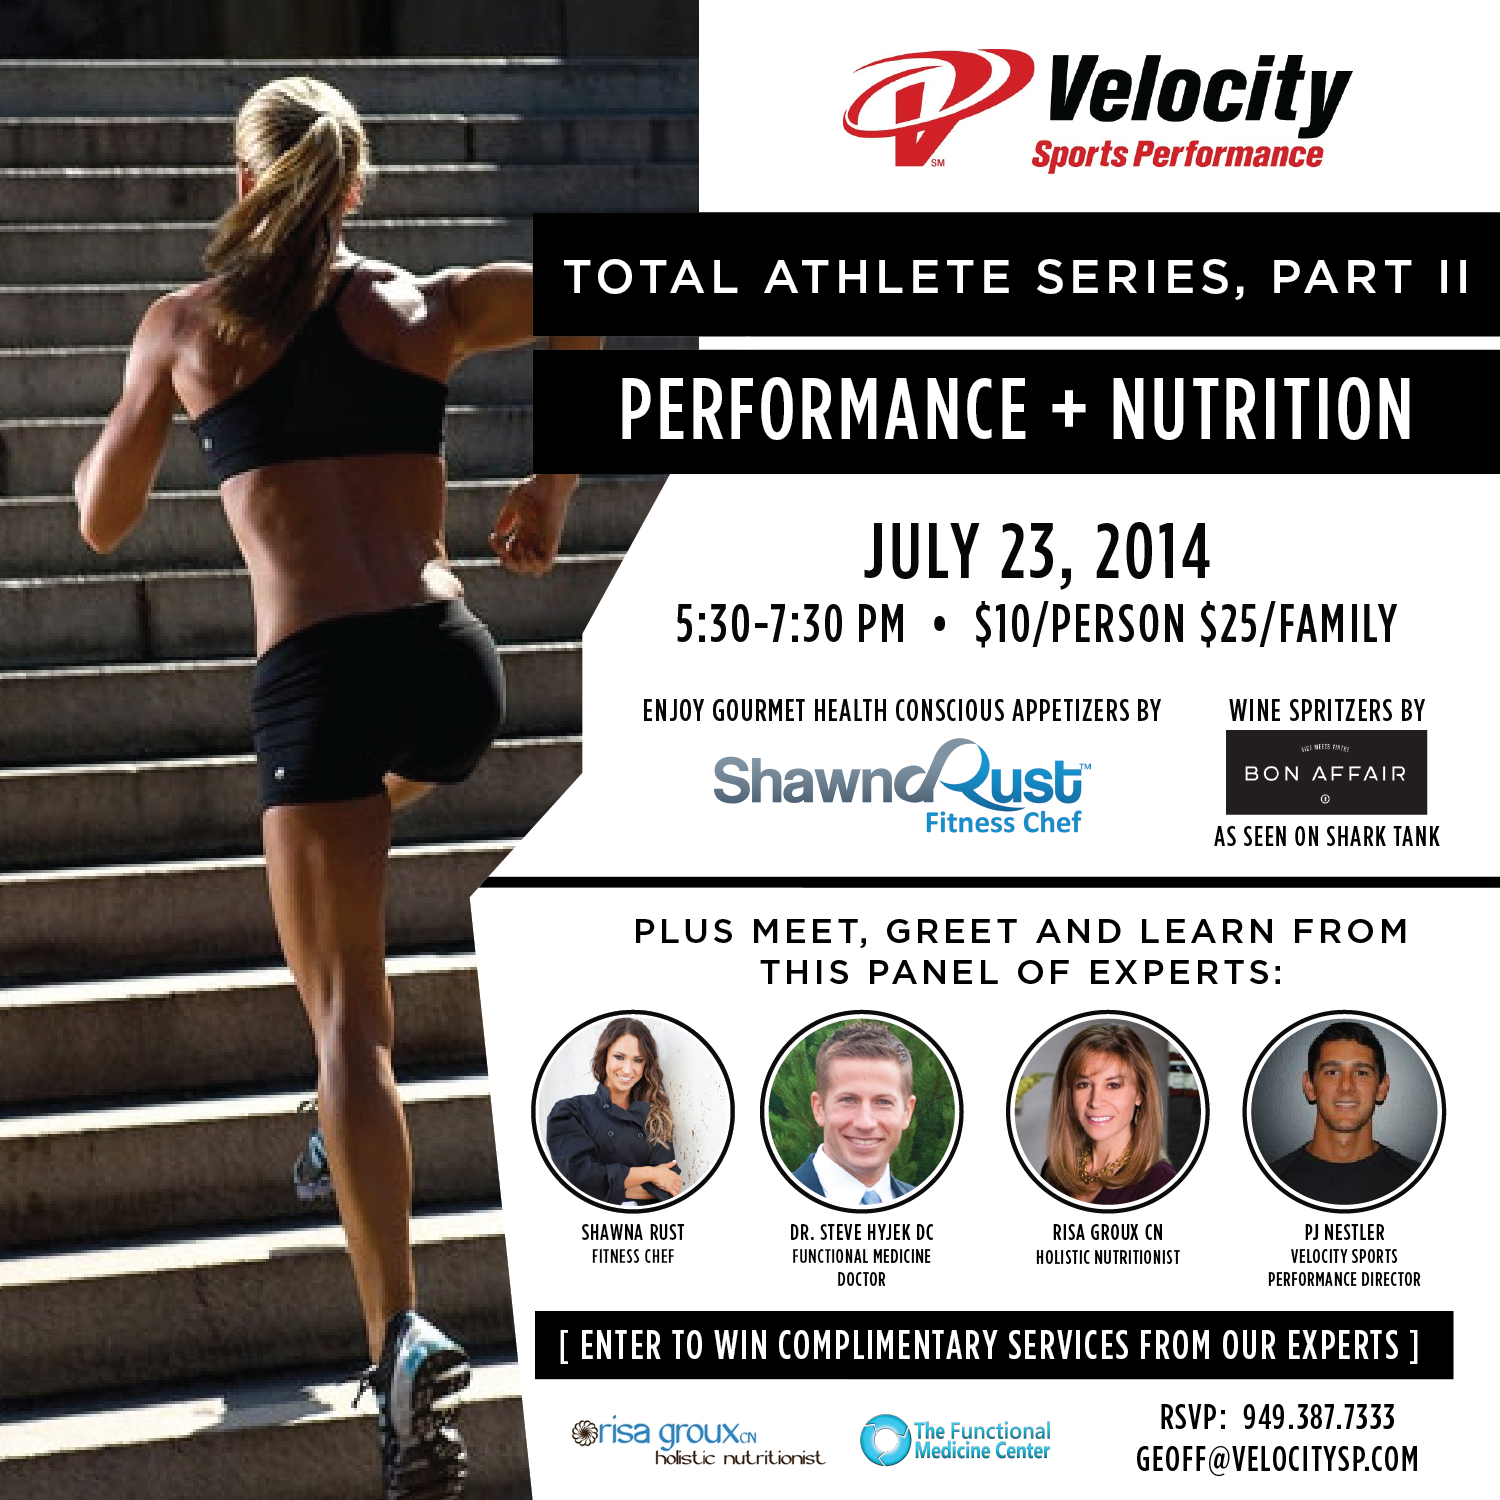 Velocity Nutrition and Performance Event